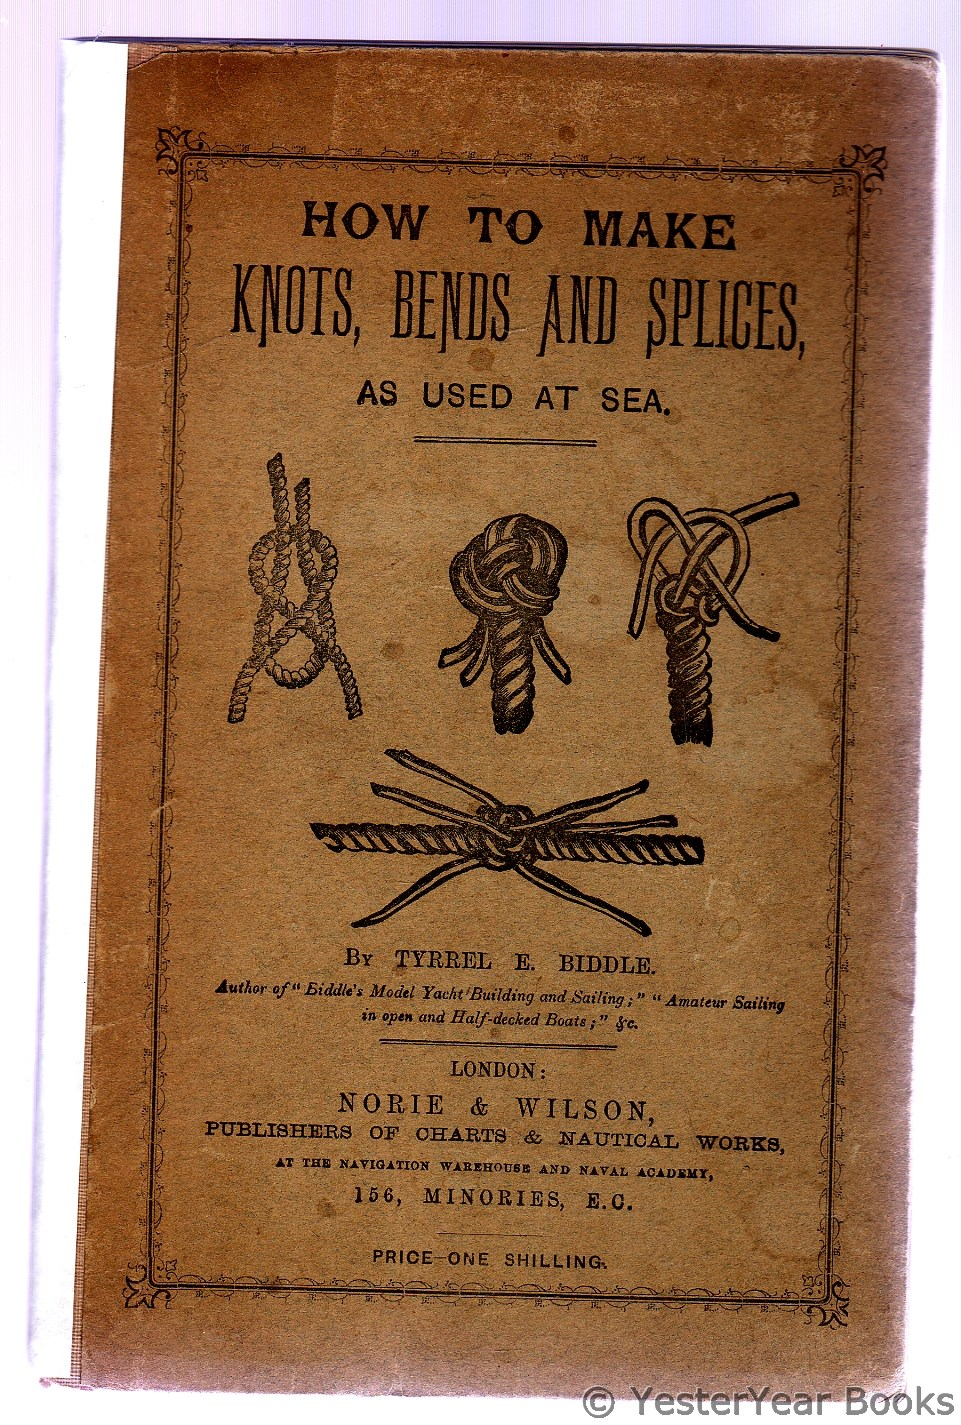 Image for How to Make Knots, Bends and Splices as used at Sea